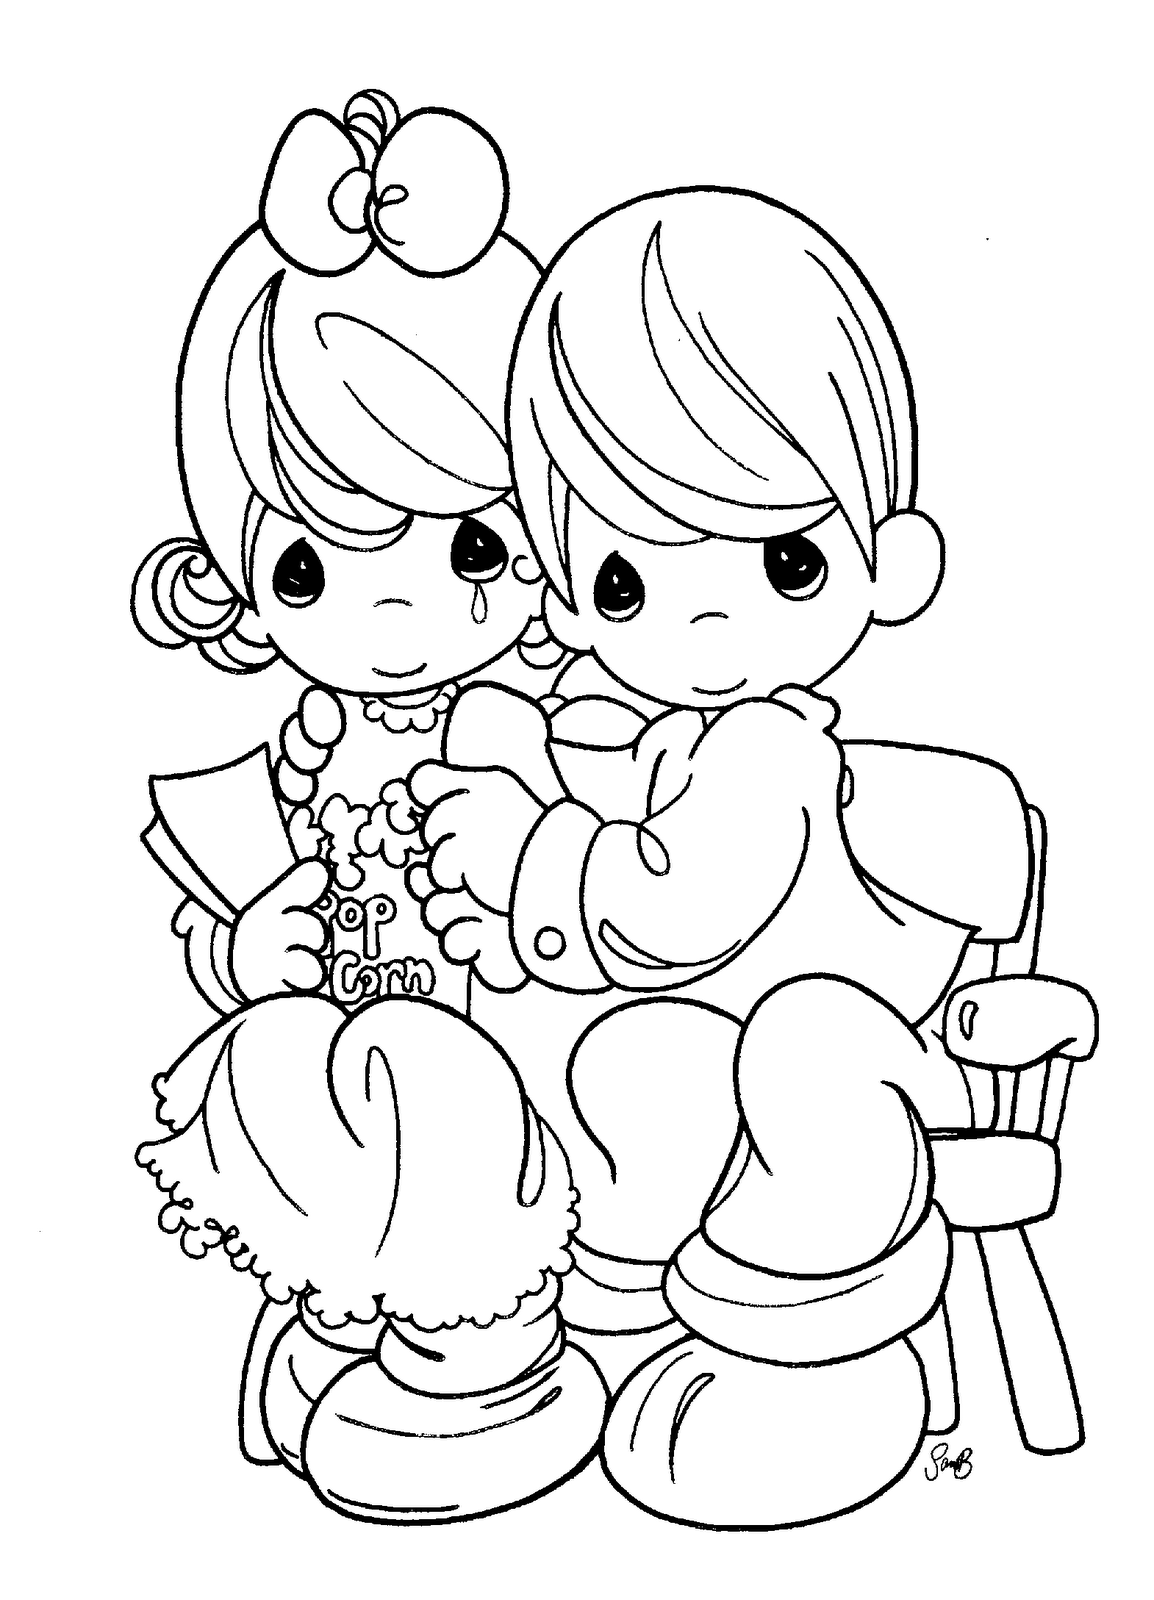 Precious Moments for Love Coloring Pages   Coloring pages ...